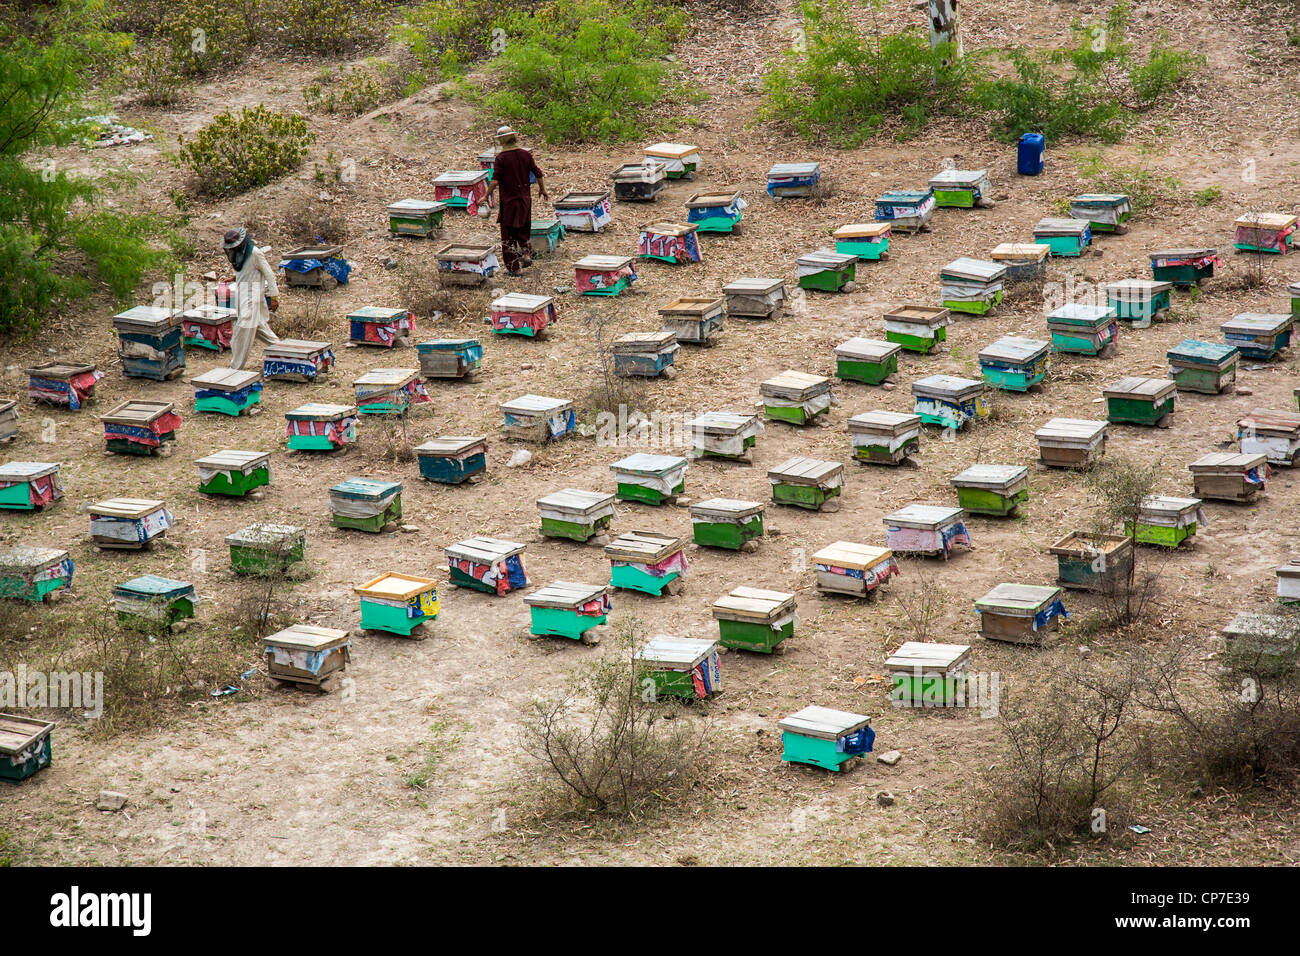 Bee hives in Punjab Province, Pakistan - Stock Image